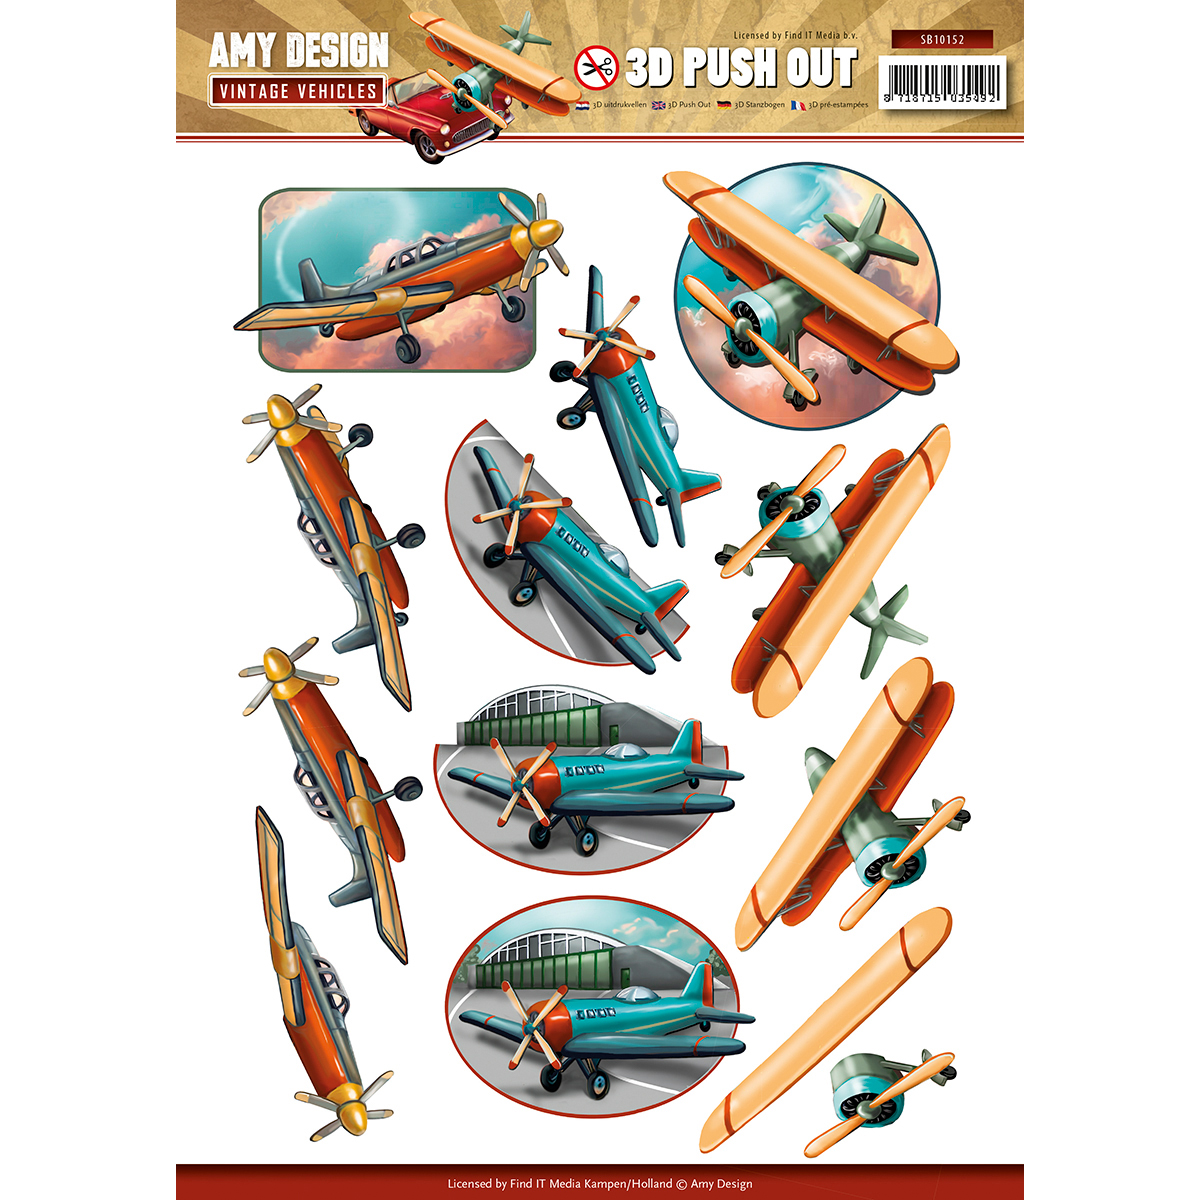 Planes - Find It Amy Design Vintage Vehicles Punchout Sheet